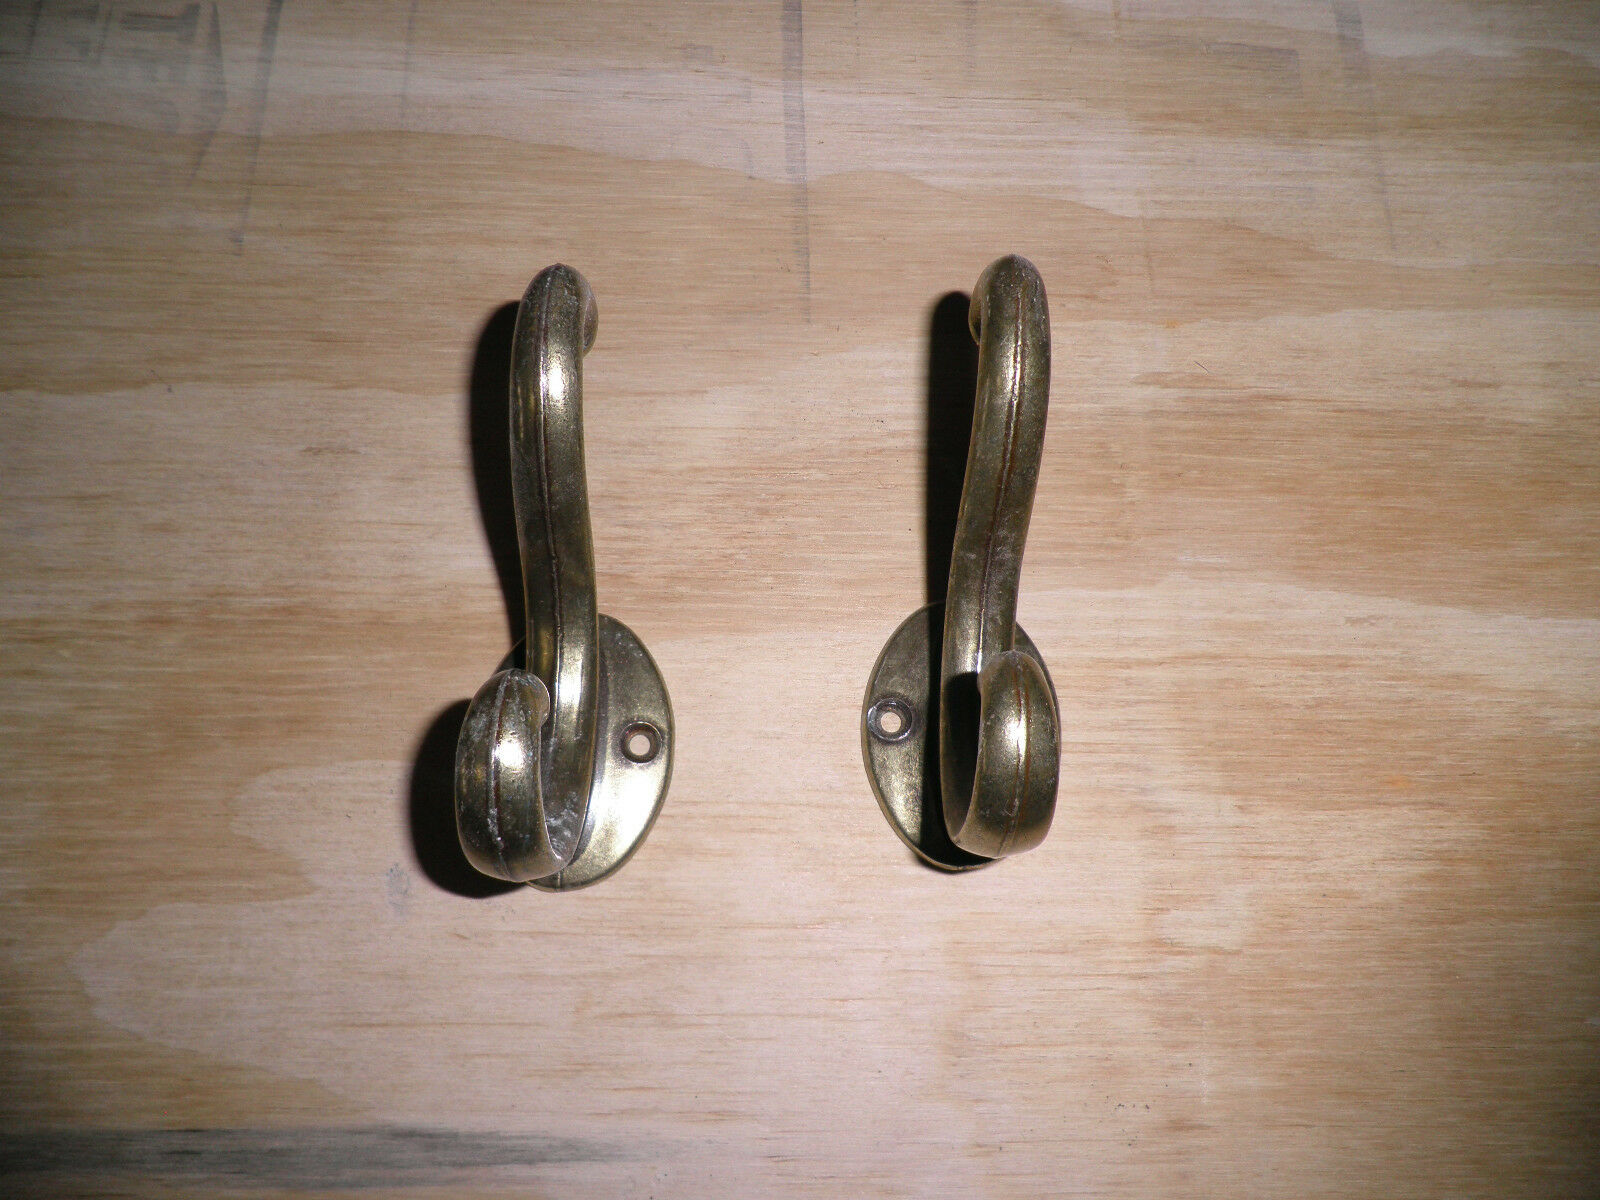 2 Old Brass Coat Hooks maybe Plated